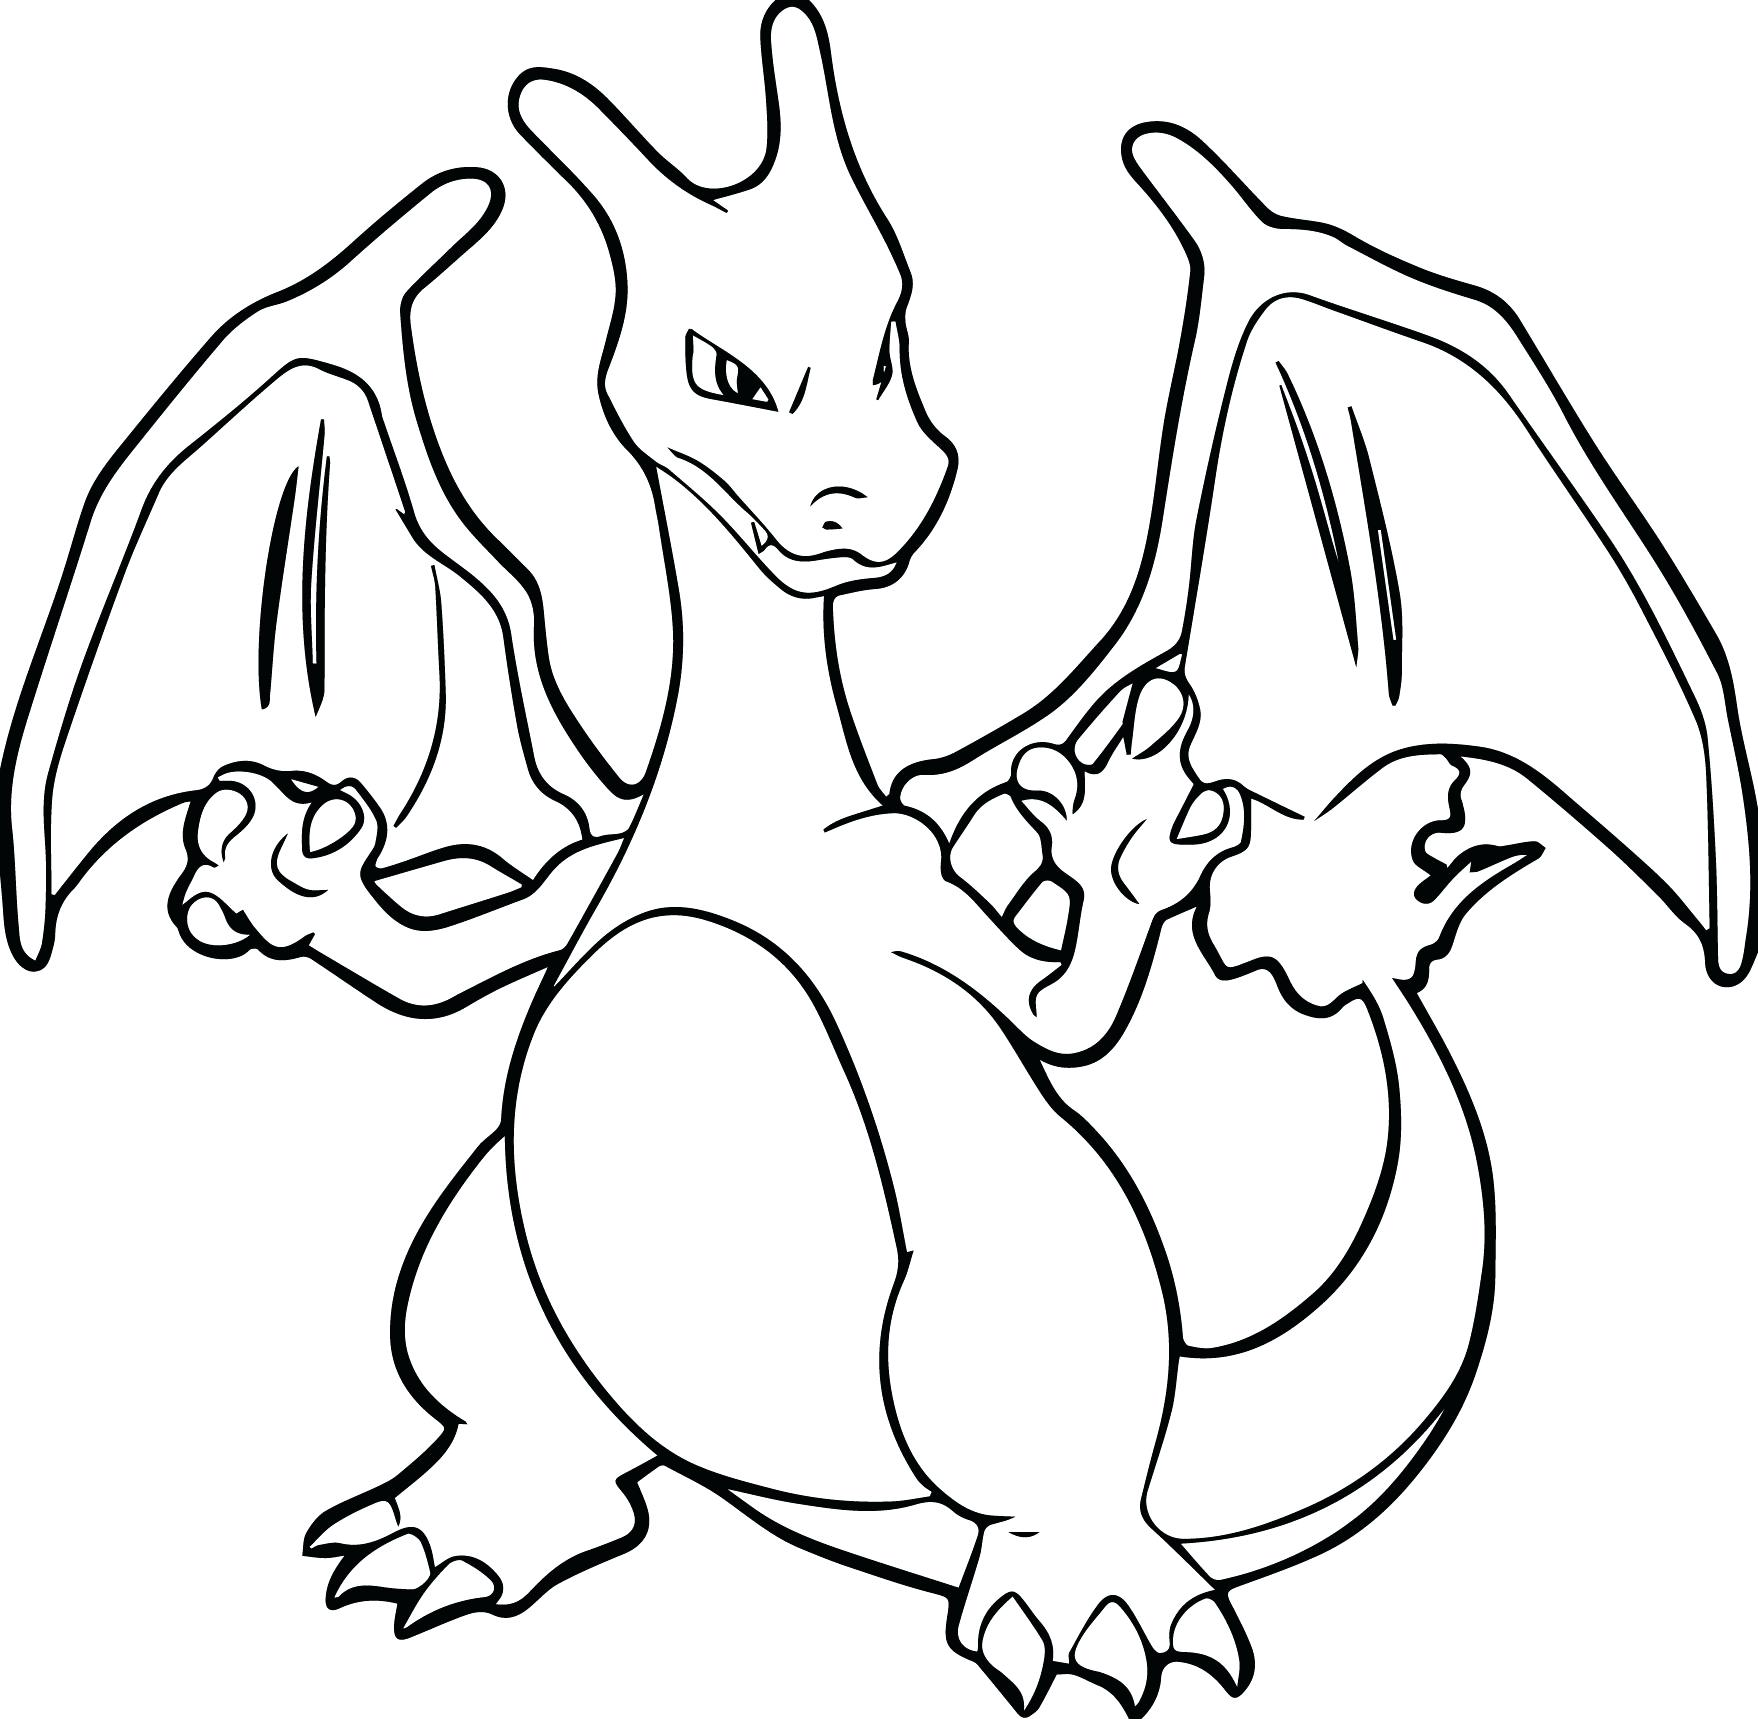 1758x1719 Swampert Coloring Pages Outstanding Pokemon Mega